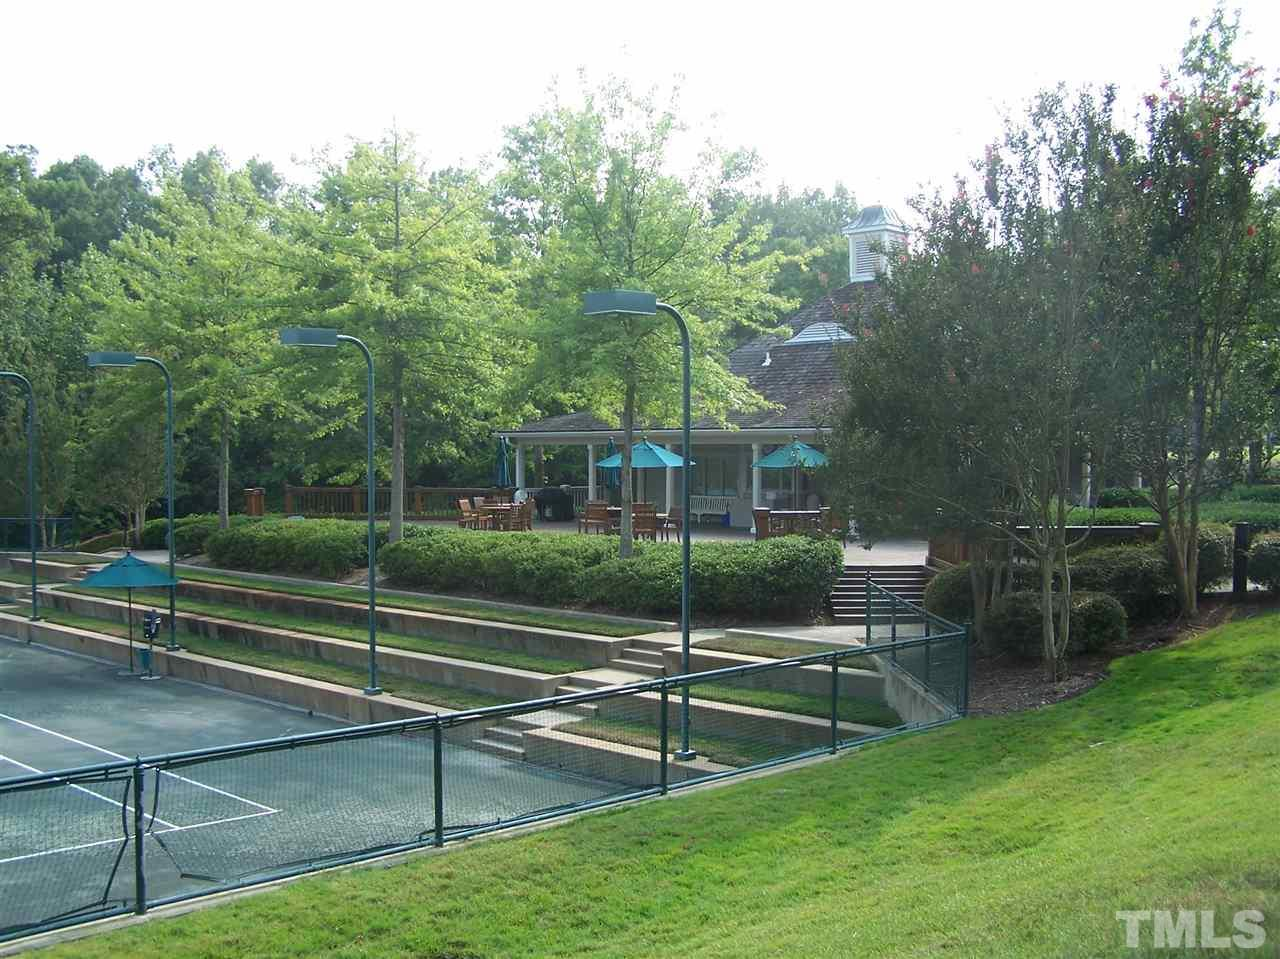 As part of club membership, you have access to the tennis facility as well as exercise and fitness rooms, dining facilities and fun social events for all ages.